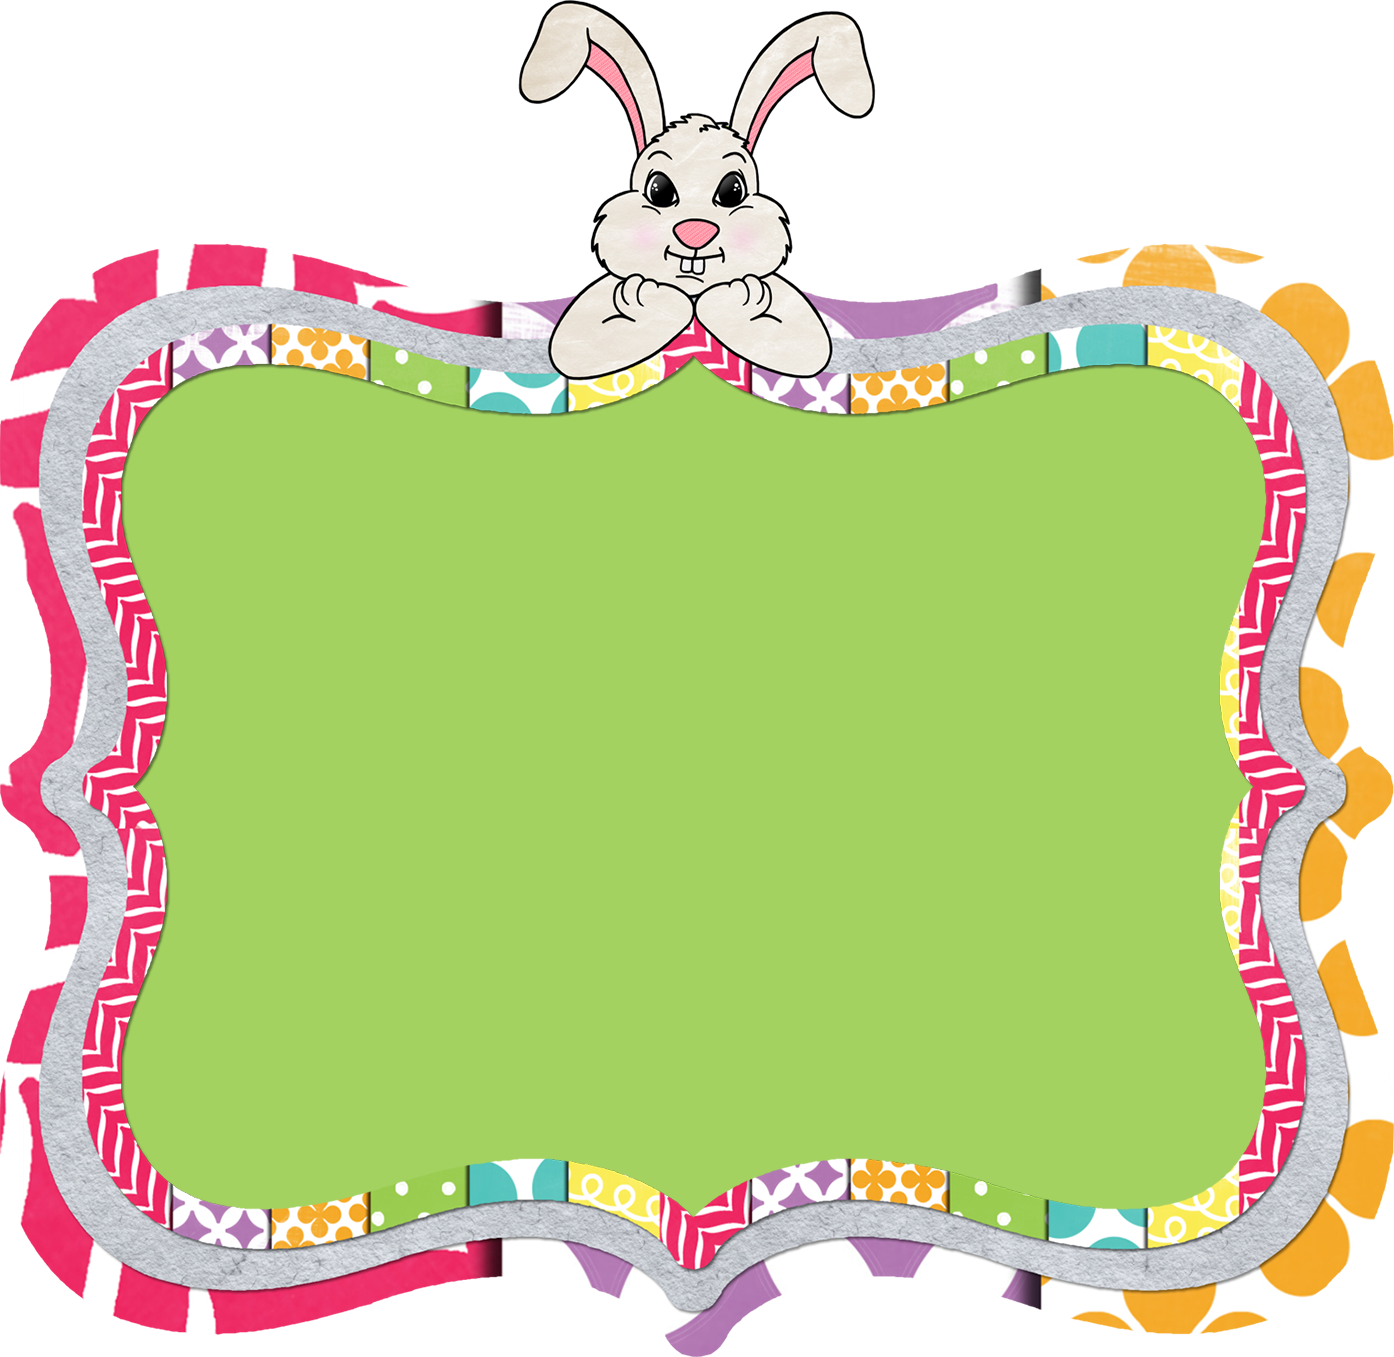 Friends Powerpoint Border And Frame Clipart Clipart Best